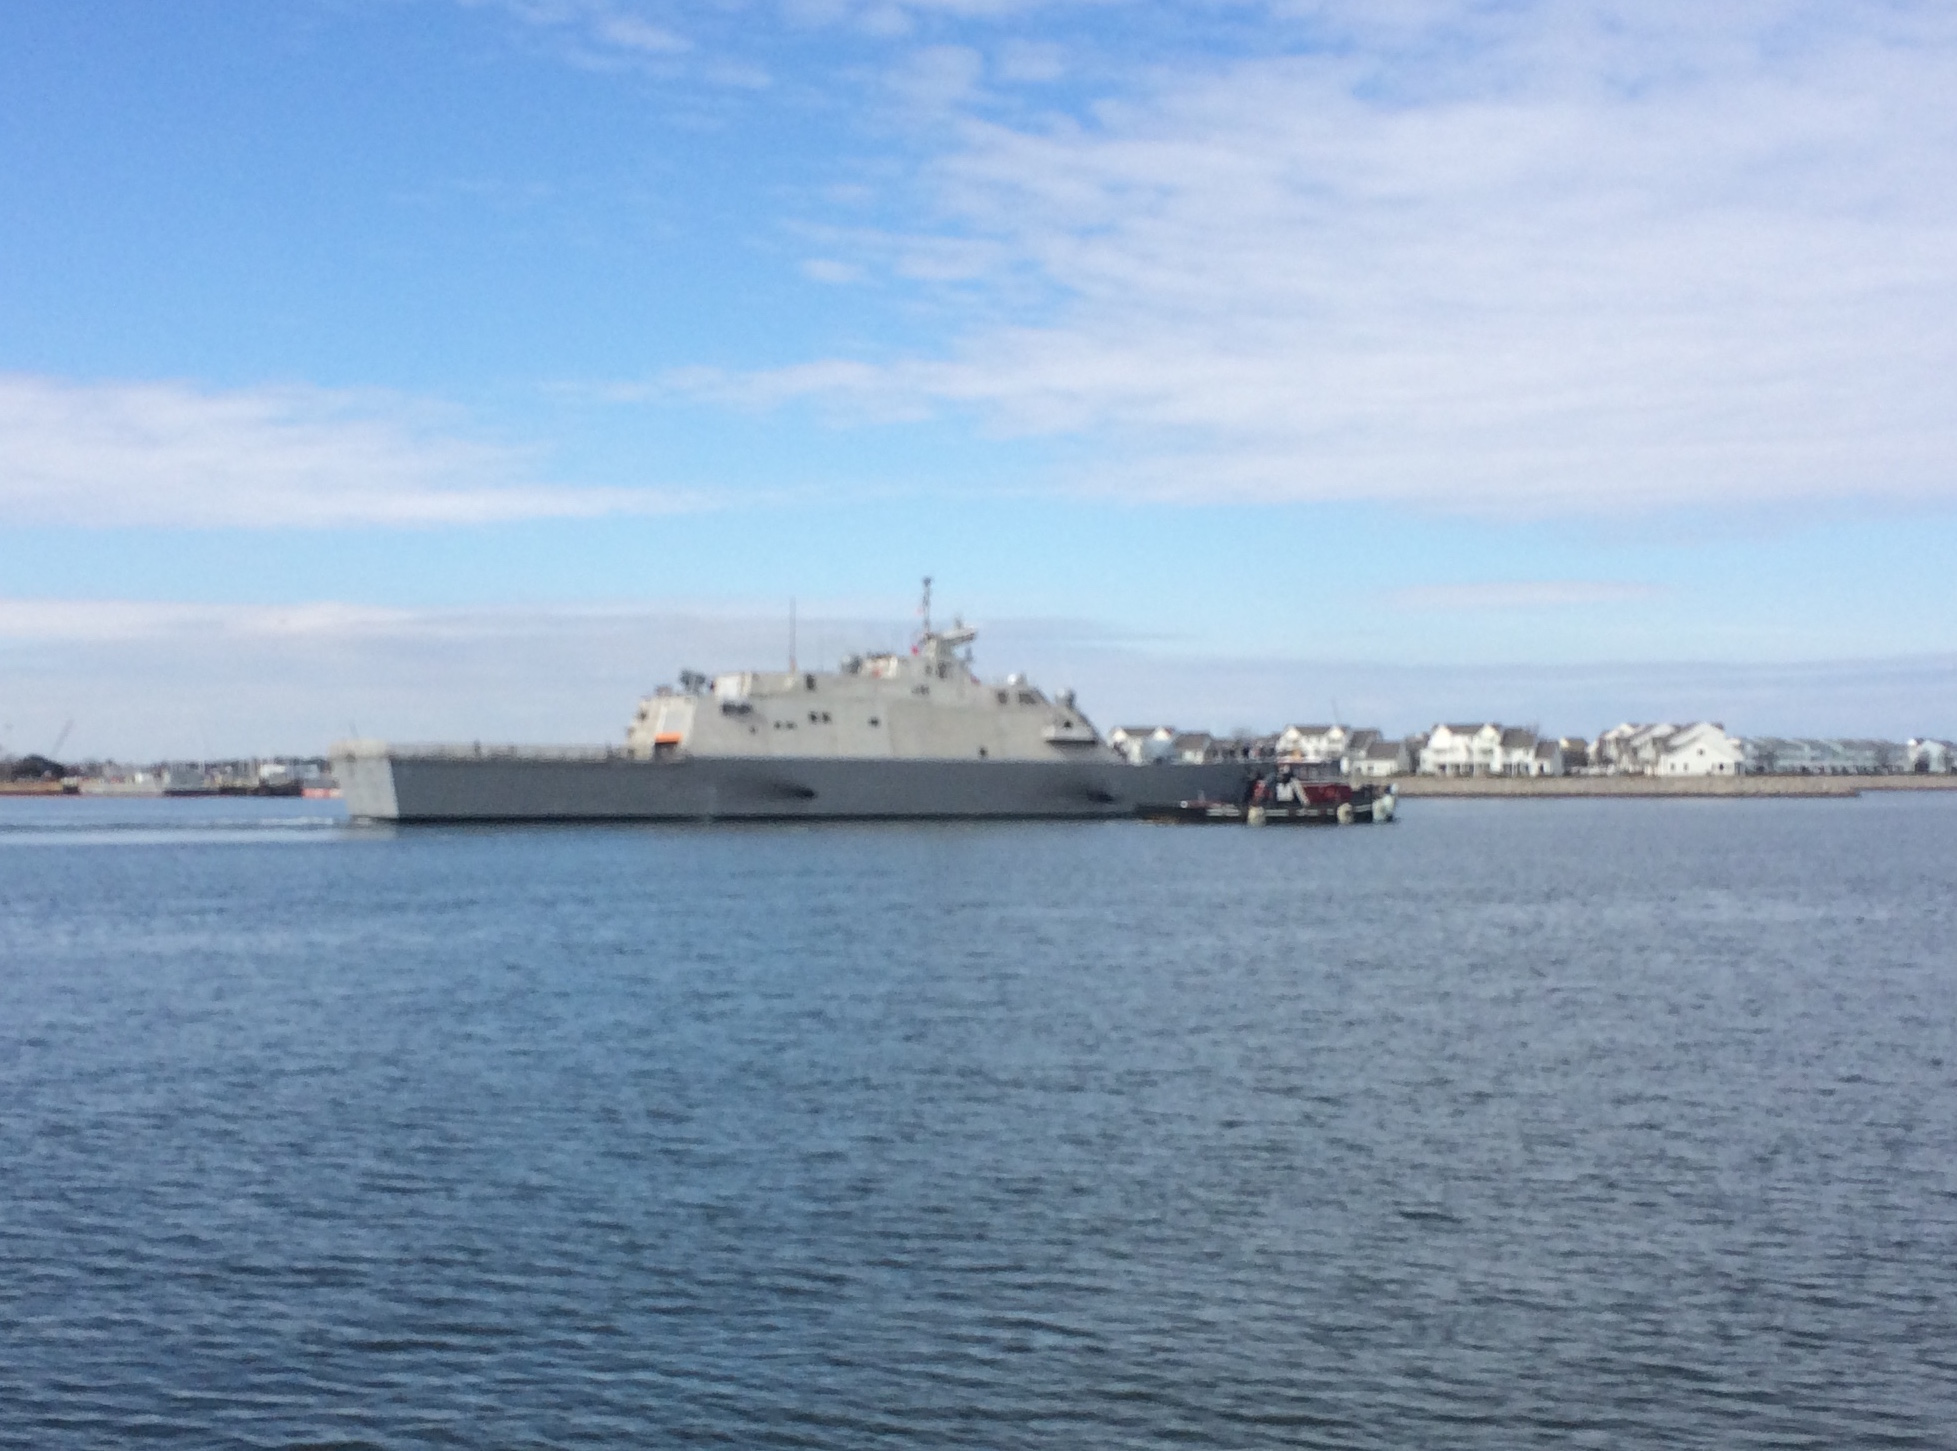 Amateur photo of USS Milwaukee (LCS-5) leaving Joint Base Little Creek - Fort Story on Feb. 17, 2016. USNI News Photo courtesy of the photographer